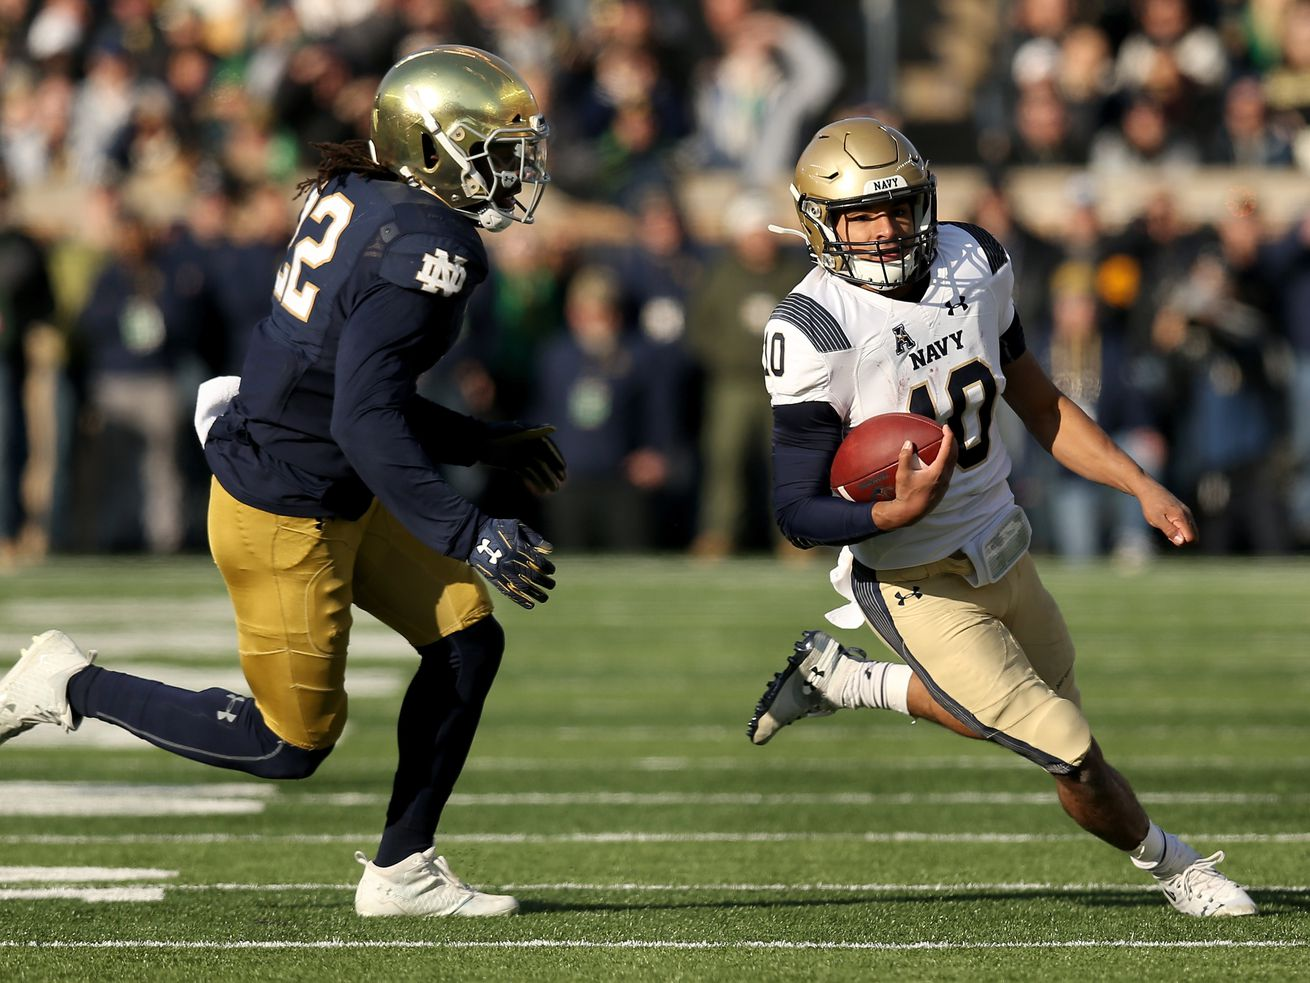 Pandemic forces Notre Dame-Navy football opener to move from Ireland to U.S.